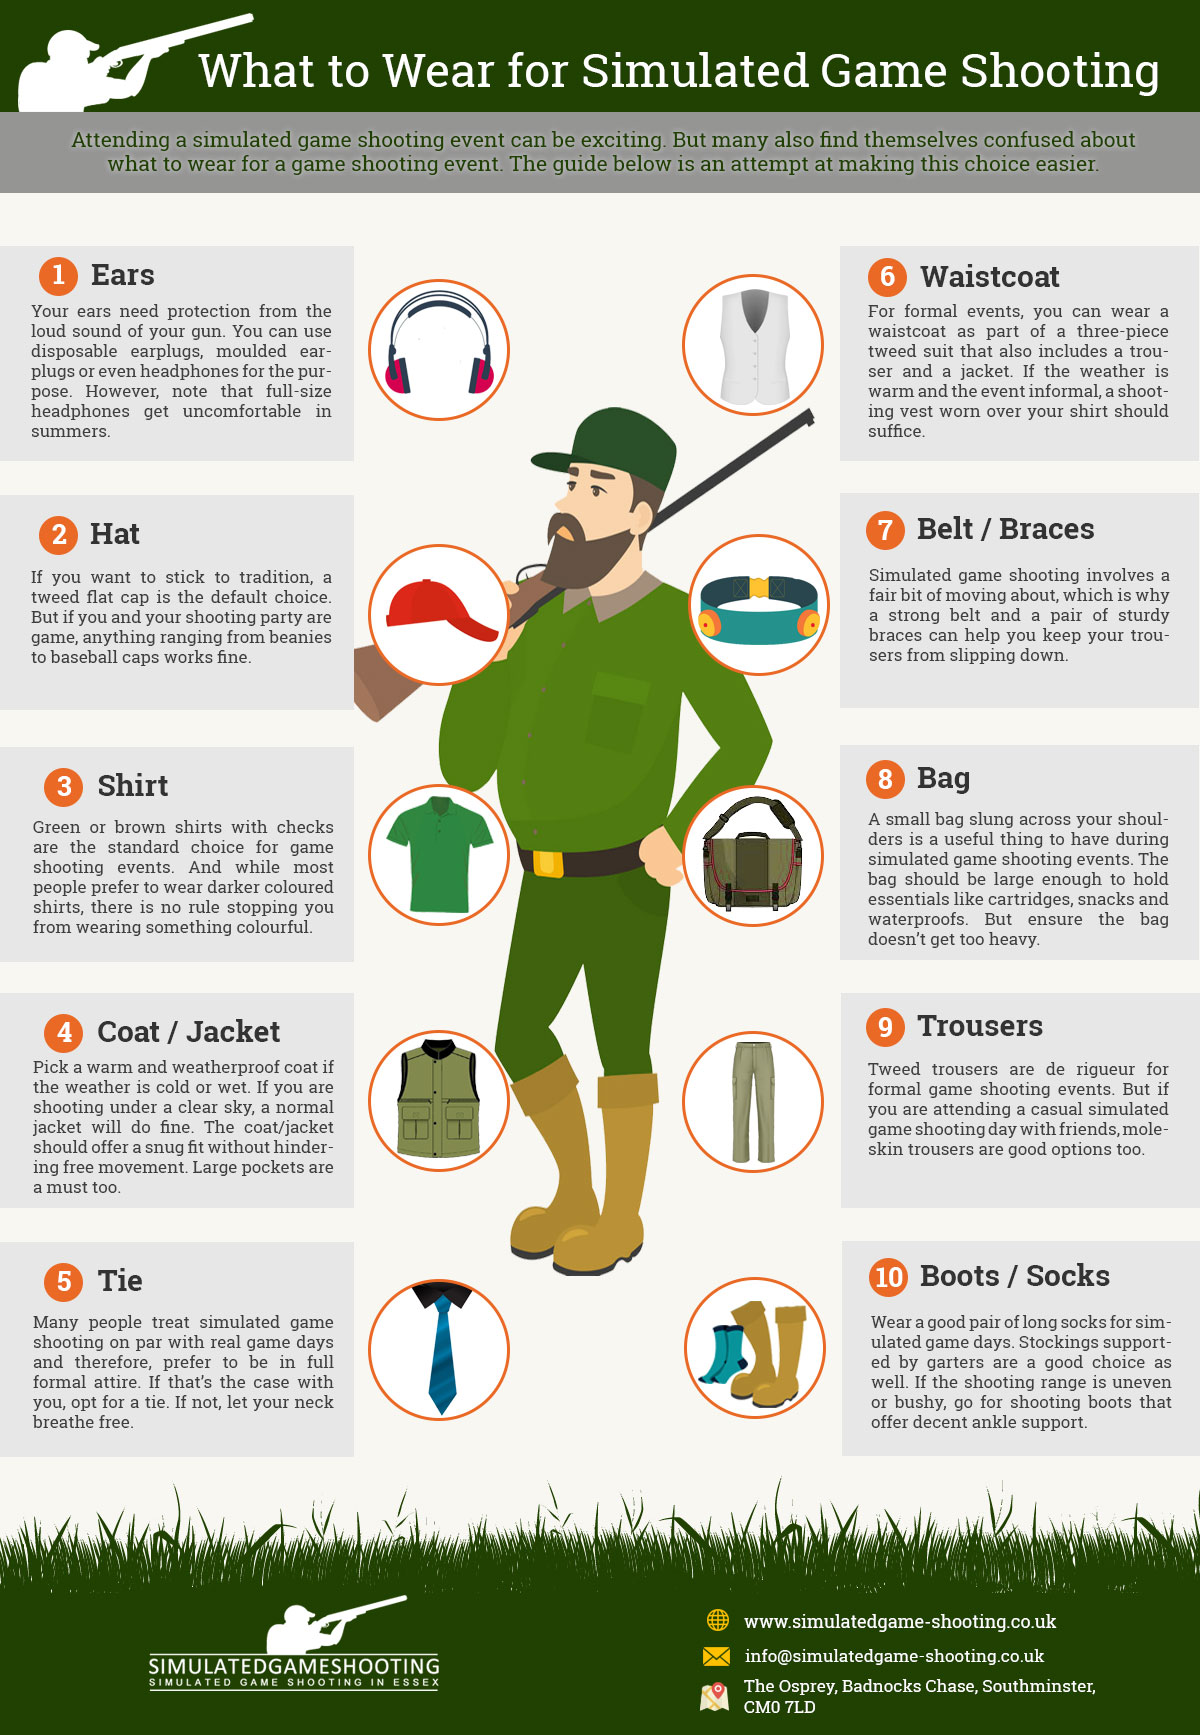 What to Wear for Simulated Game Shooting